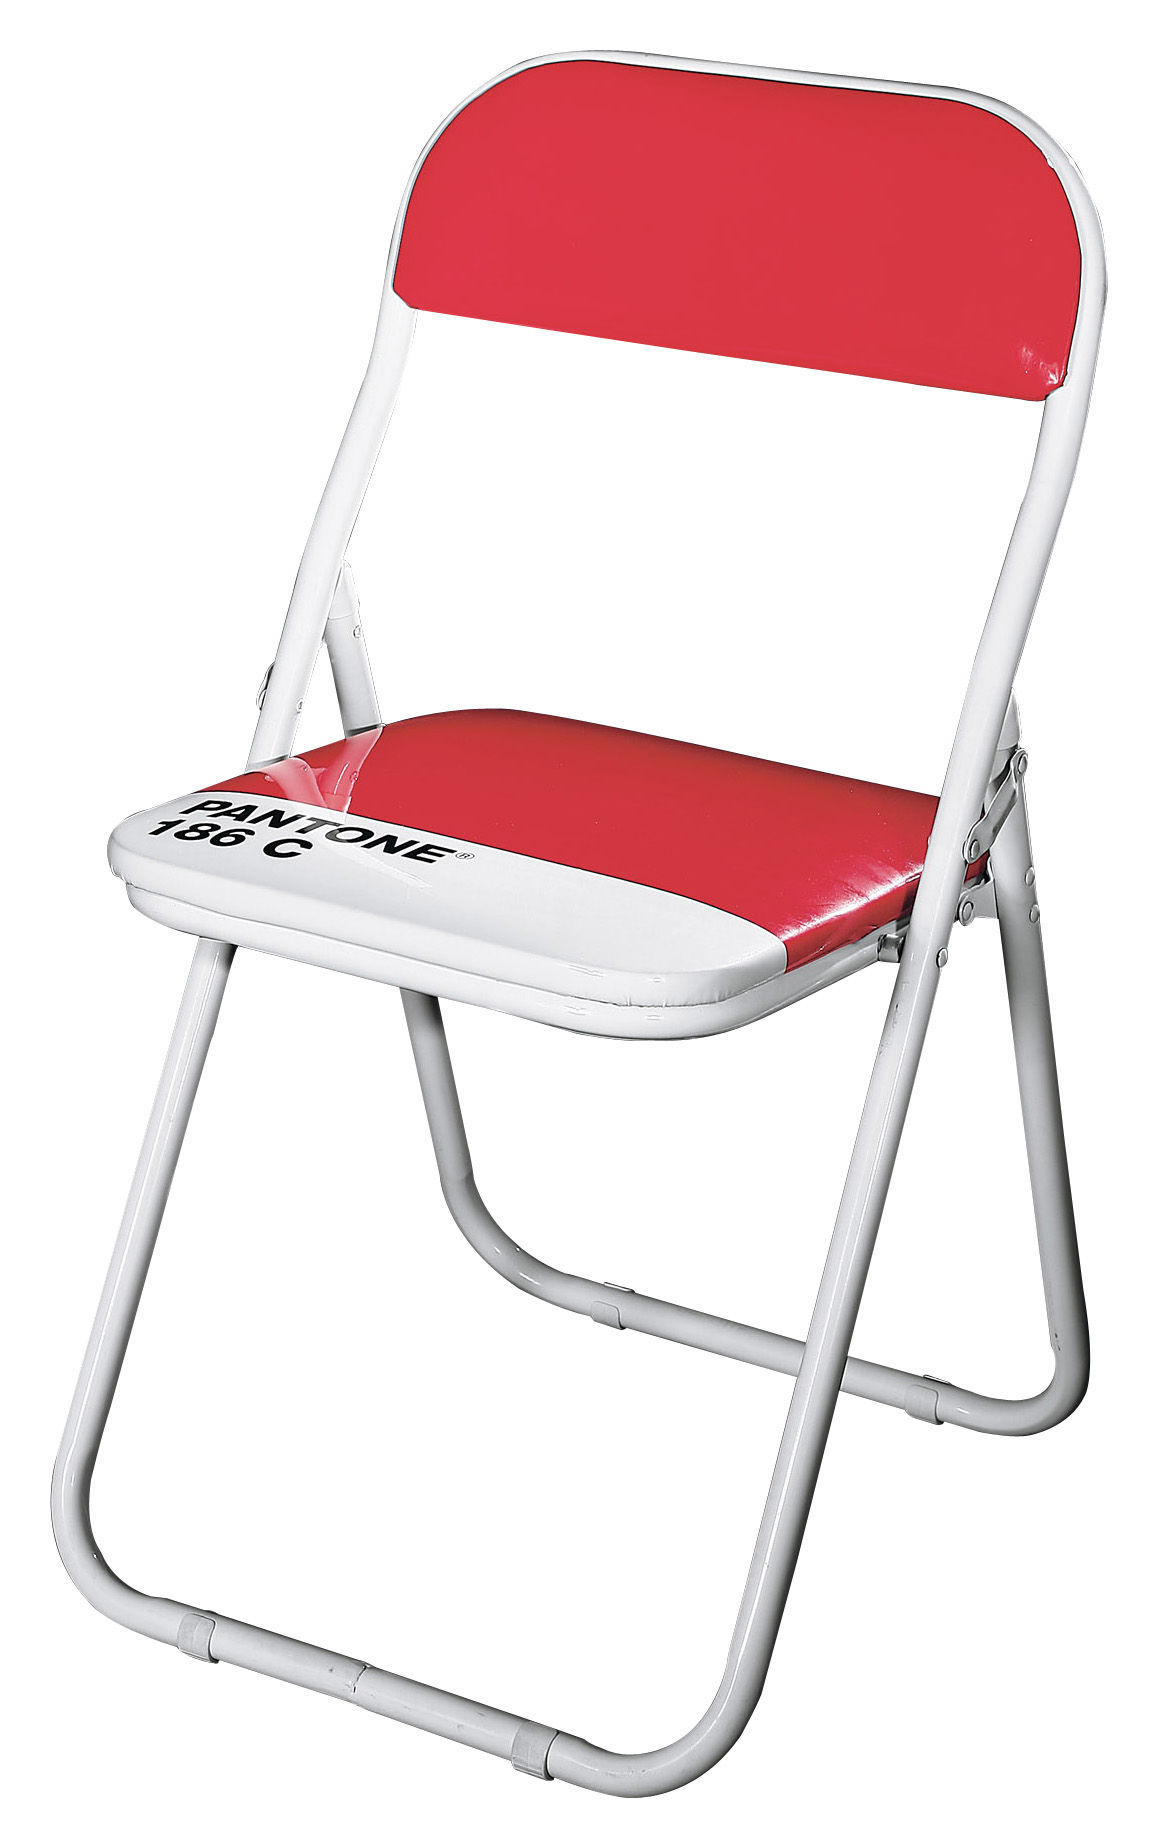 pantone foldable chair plastic metal structure 186c ruby red by seletti. Black Bedroom Furniture Sets. Home Design Ideas